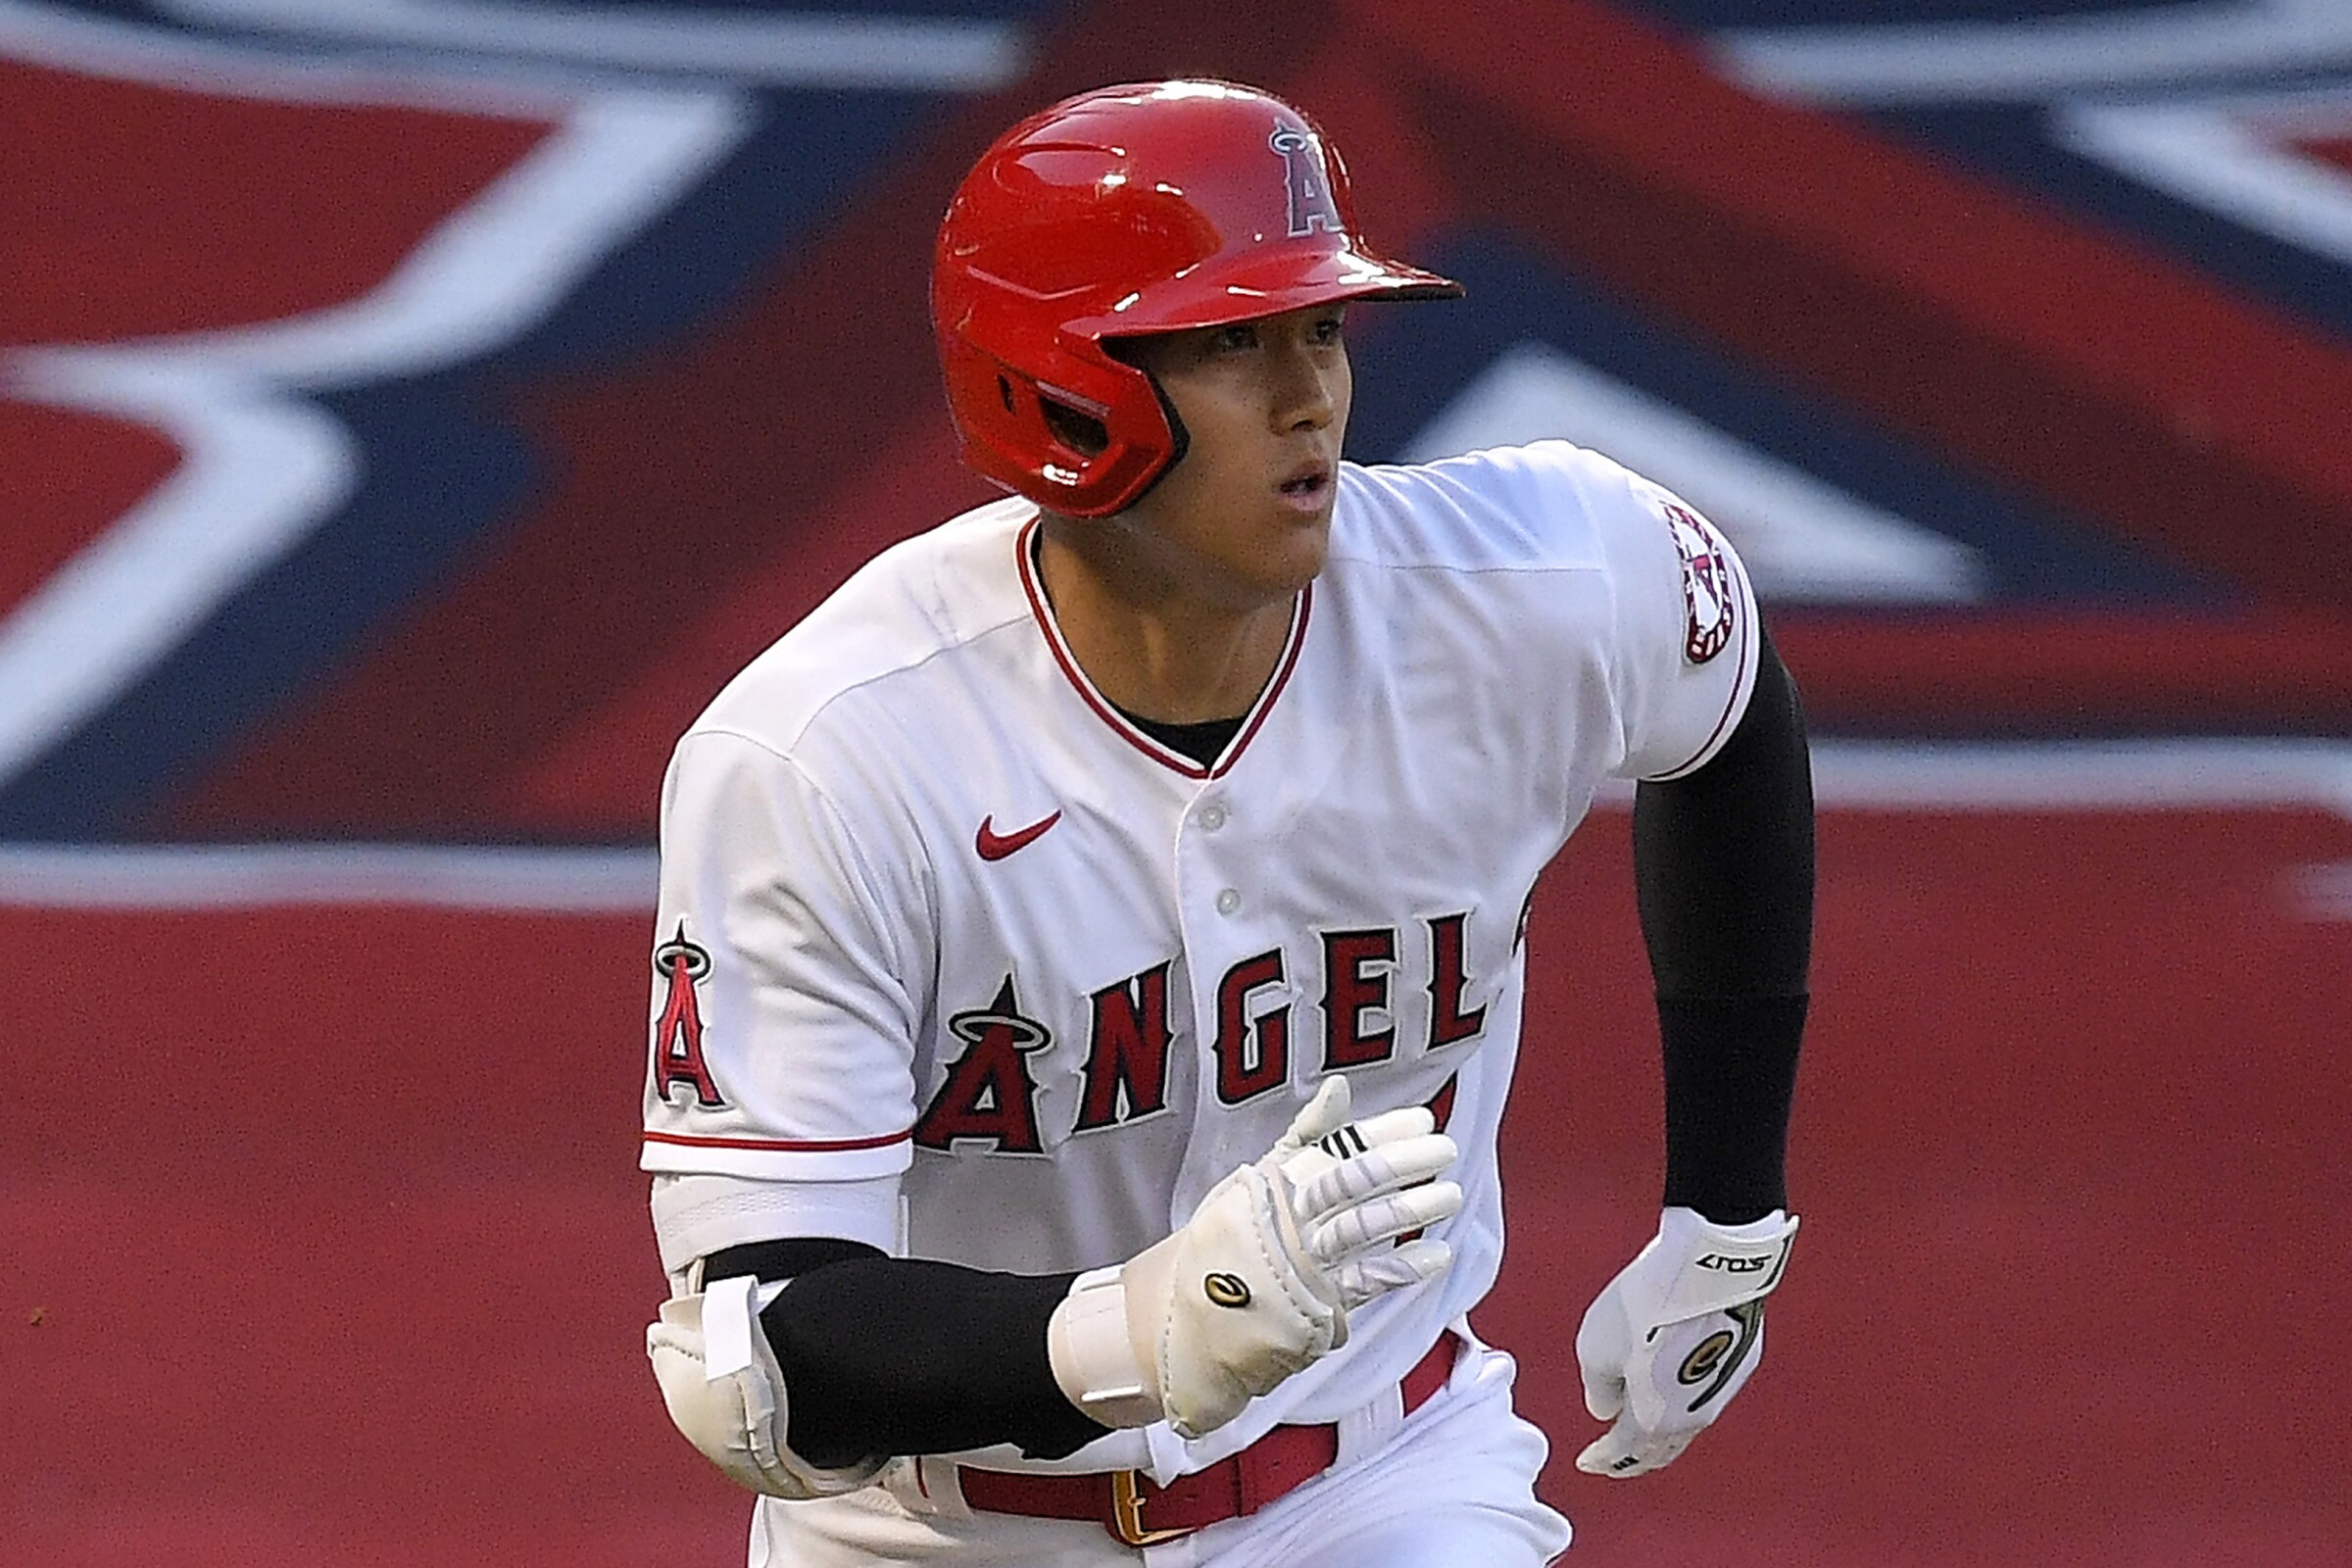 Angels' Shohei Ohtani runs to first against the Seattle Mariners on July 29